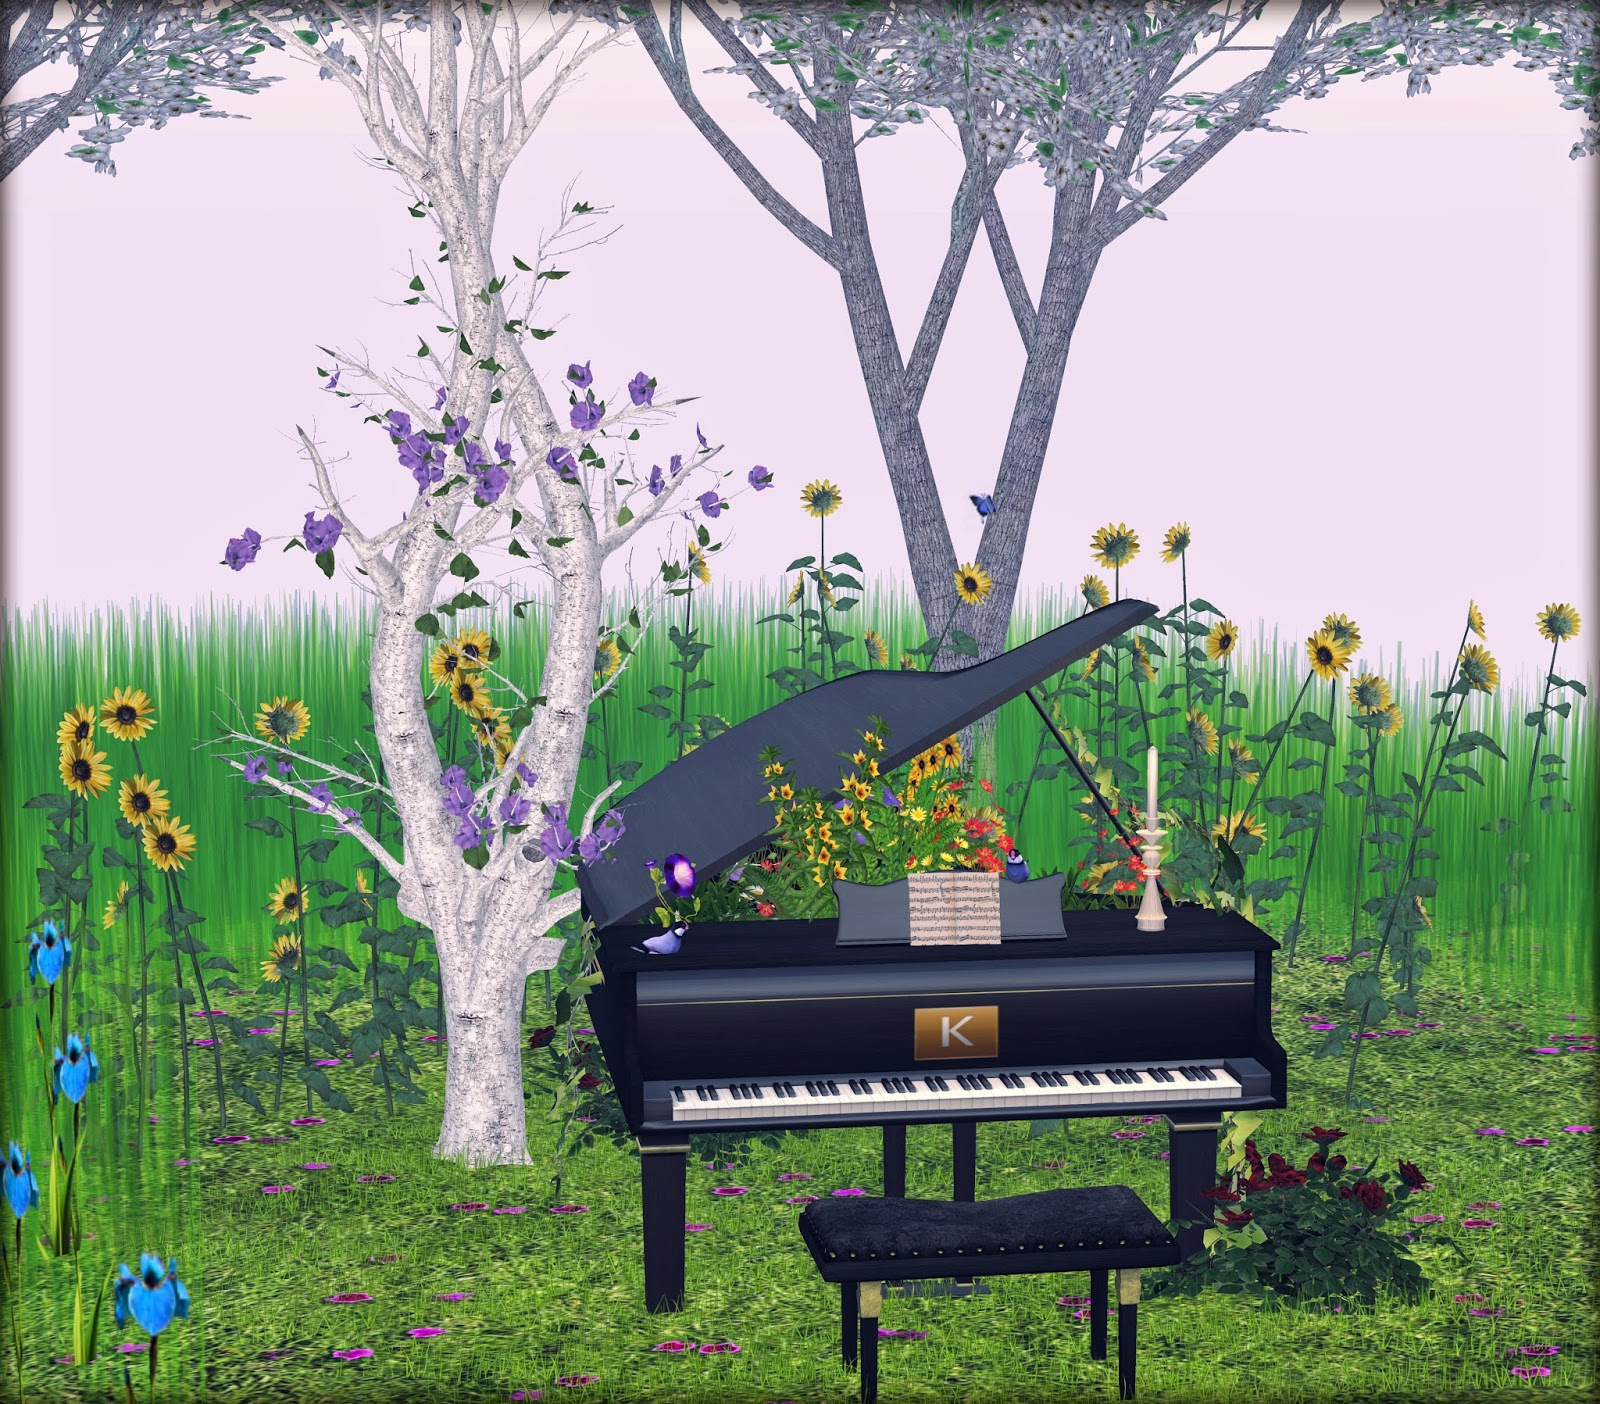 kairre garden piano,little branch sunflowers